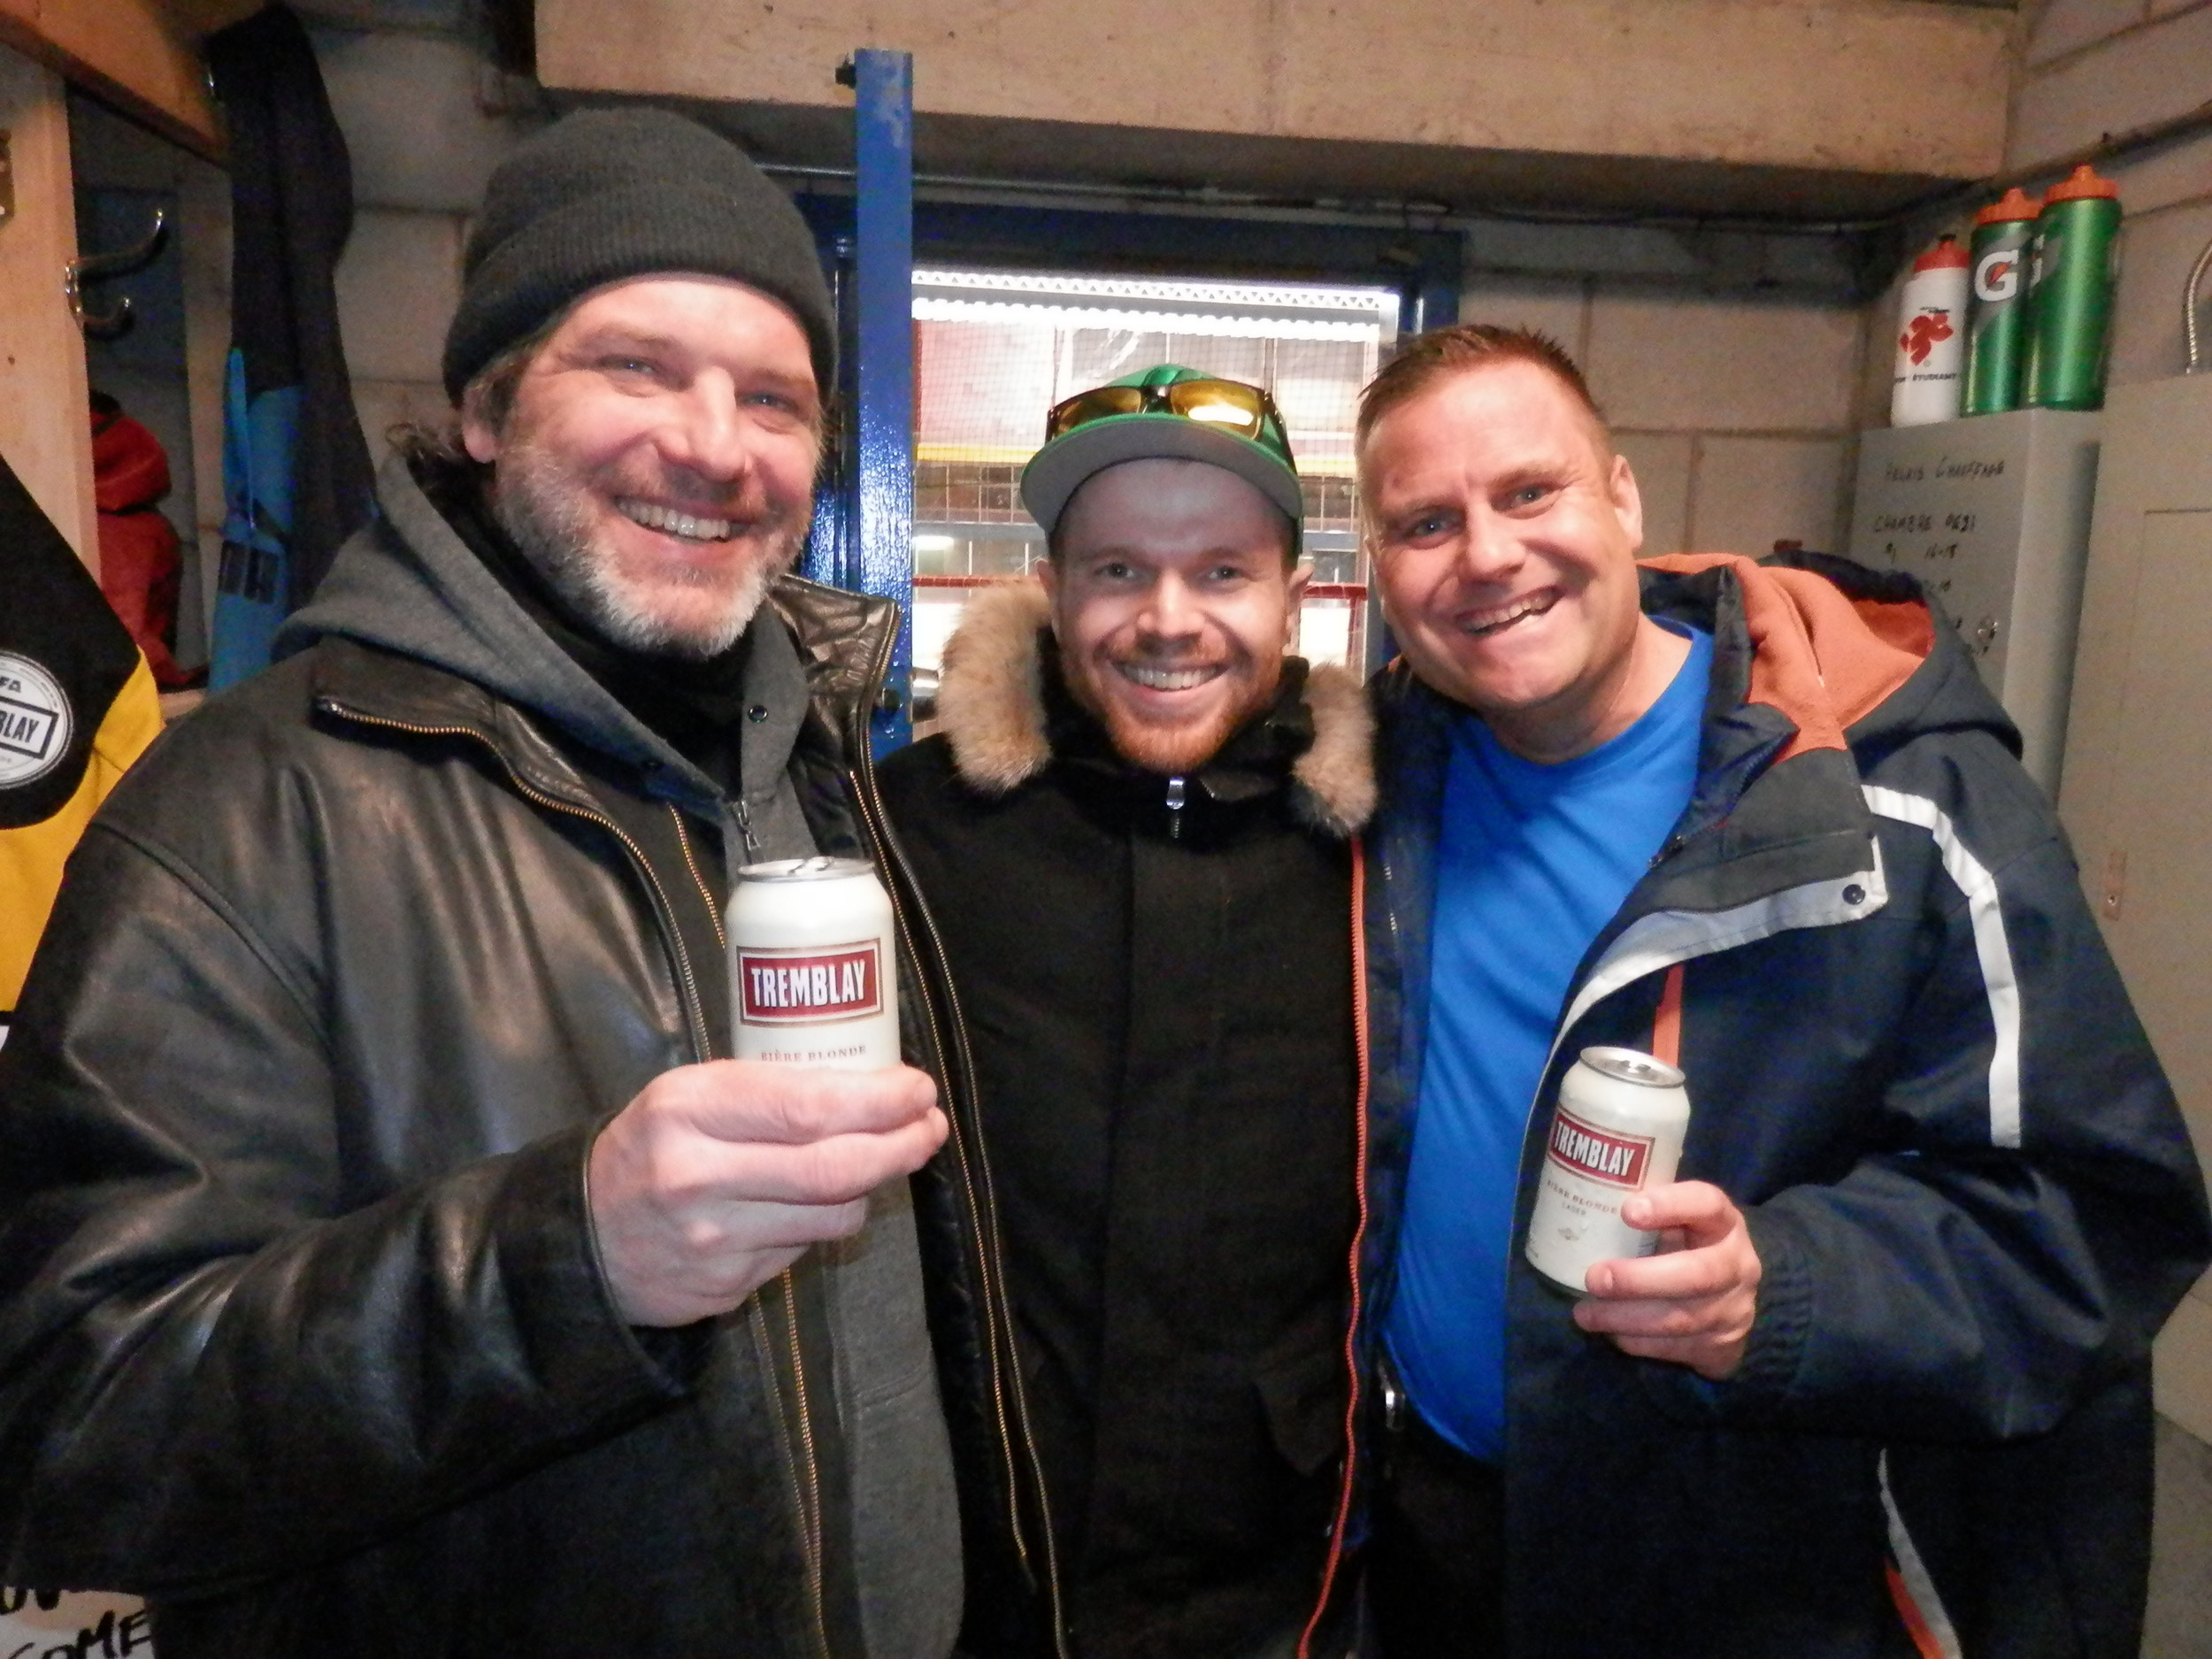 Larry from the shamrocks, jonathan from the logger & craig from the avengers in a post game ritual done by most of our members where tremblay beer & good sportsmanship go hand in hand (photo jfd)